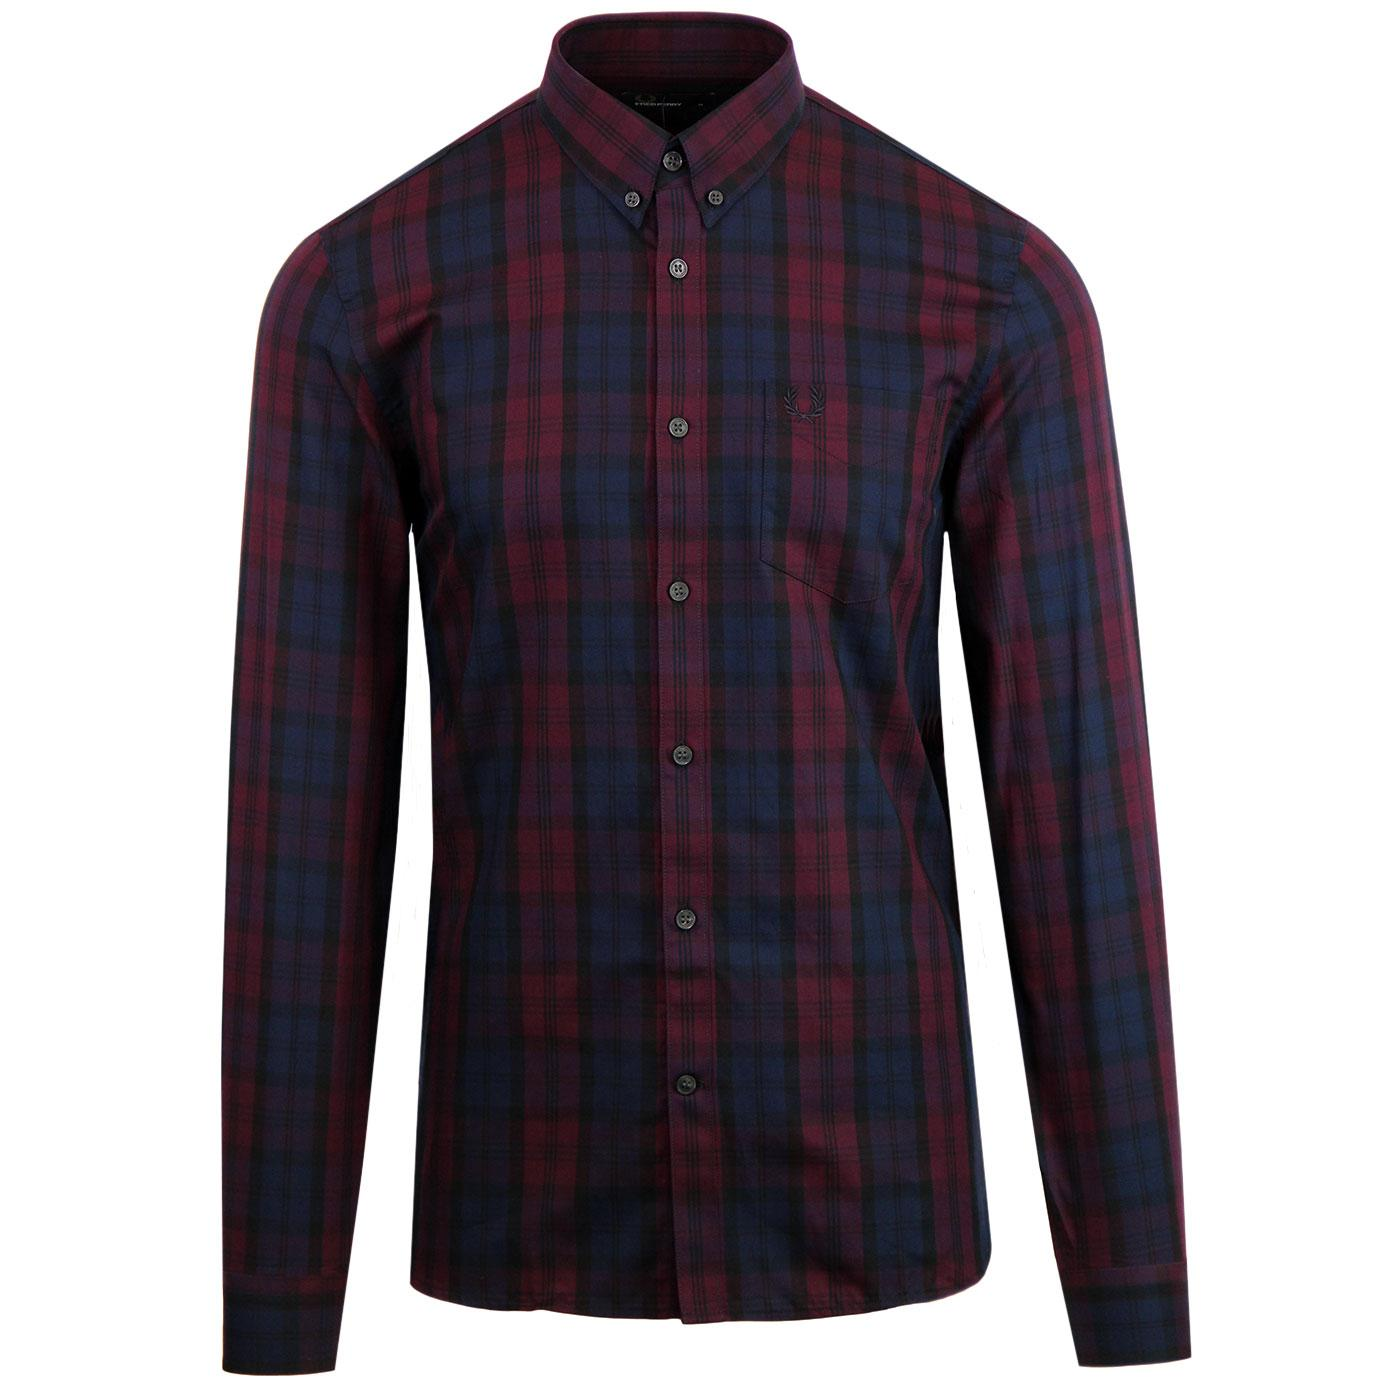 FRED PERRY 60s Mod Button Down Winter Tartan Shirt